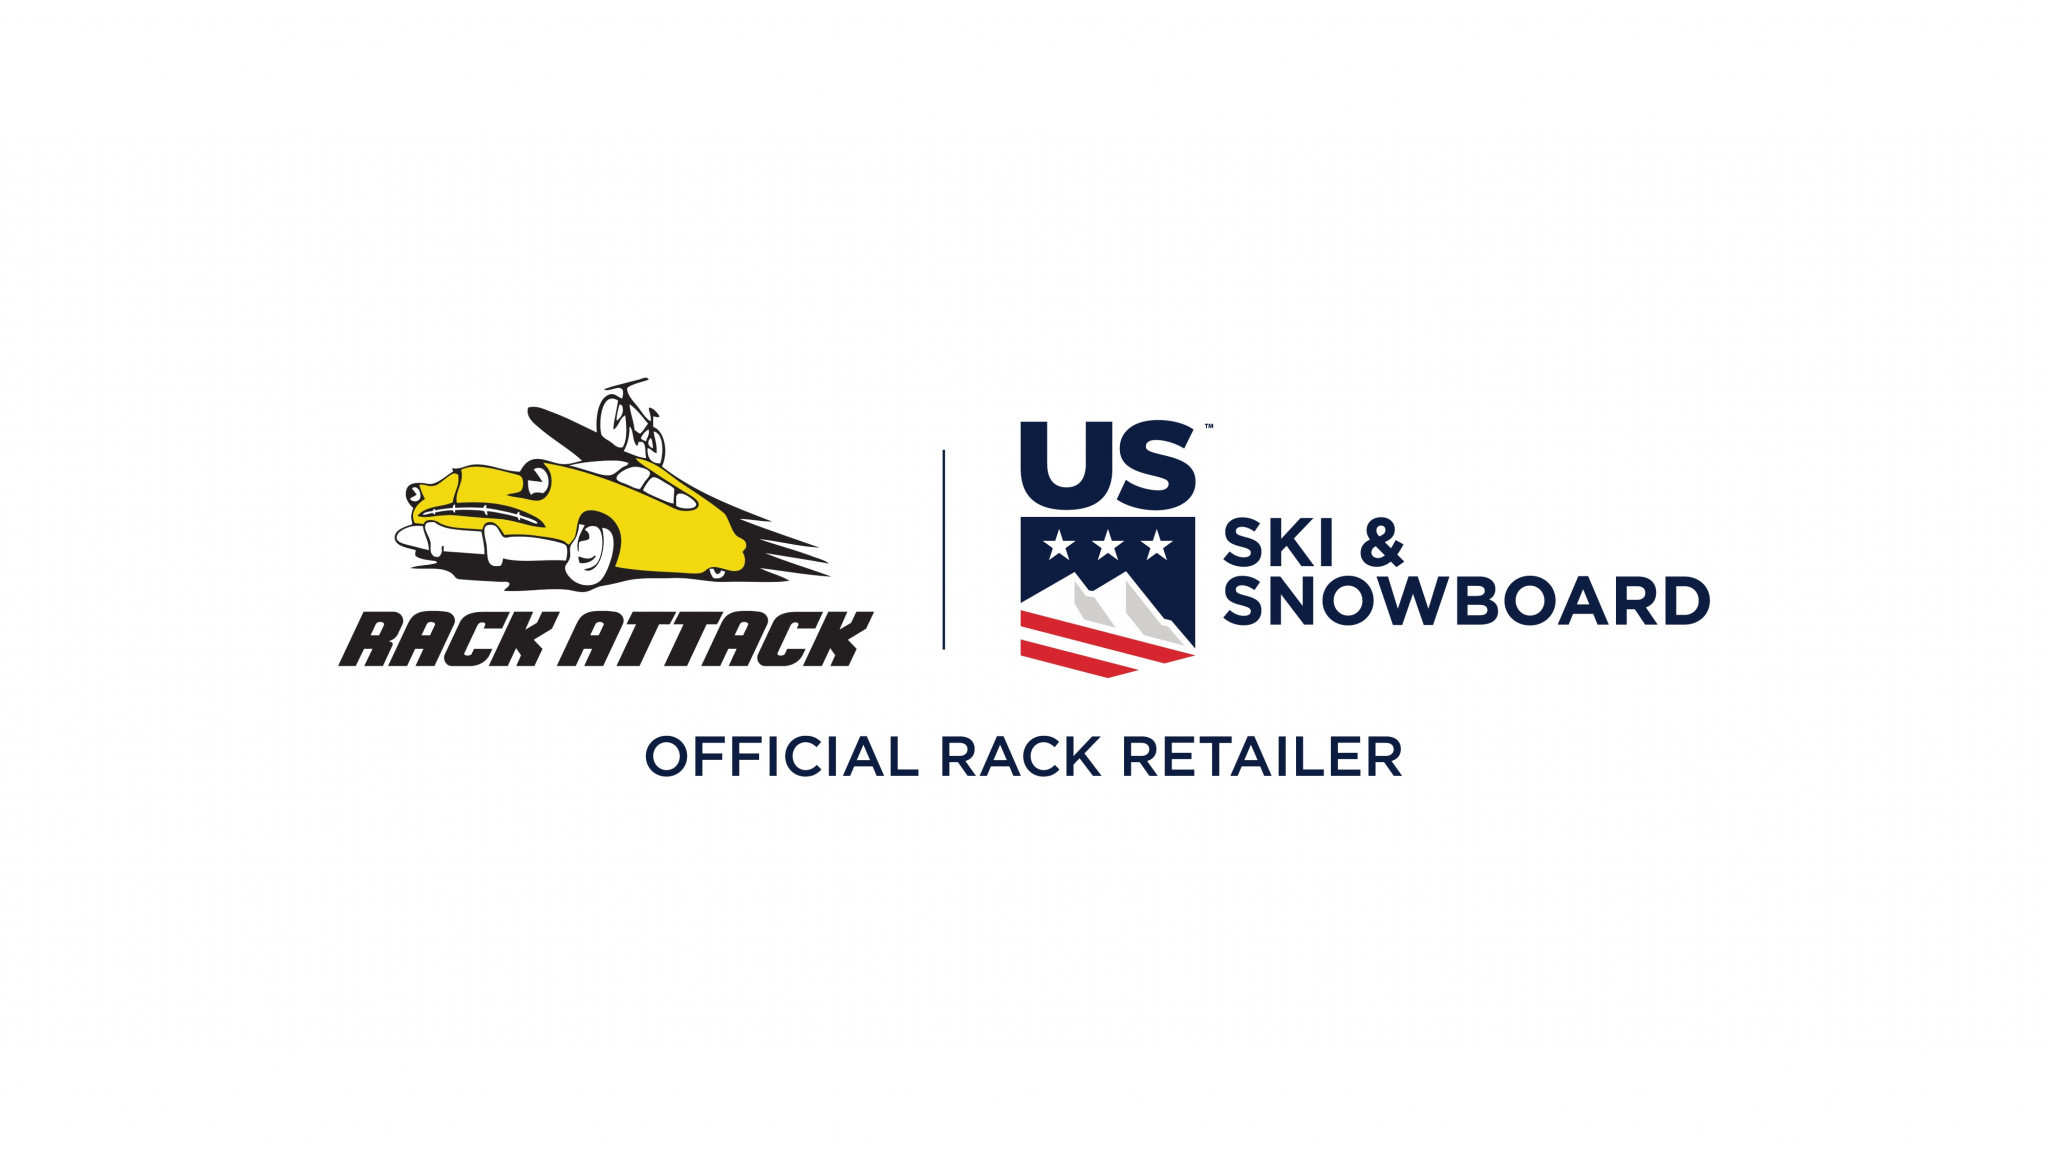 Rack Attack has been named as the official rack retailer for US Ski and Snowboard ©US Ski and Snowboard